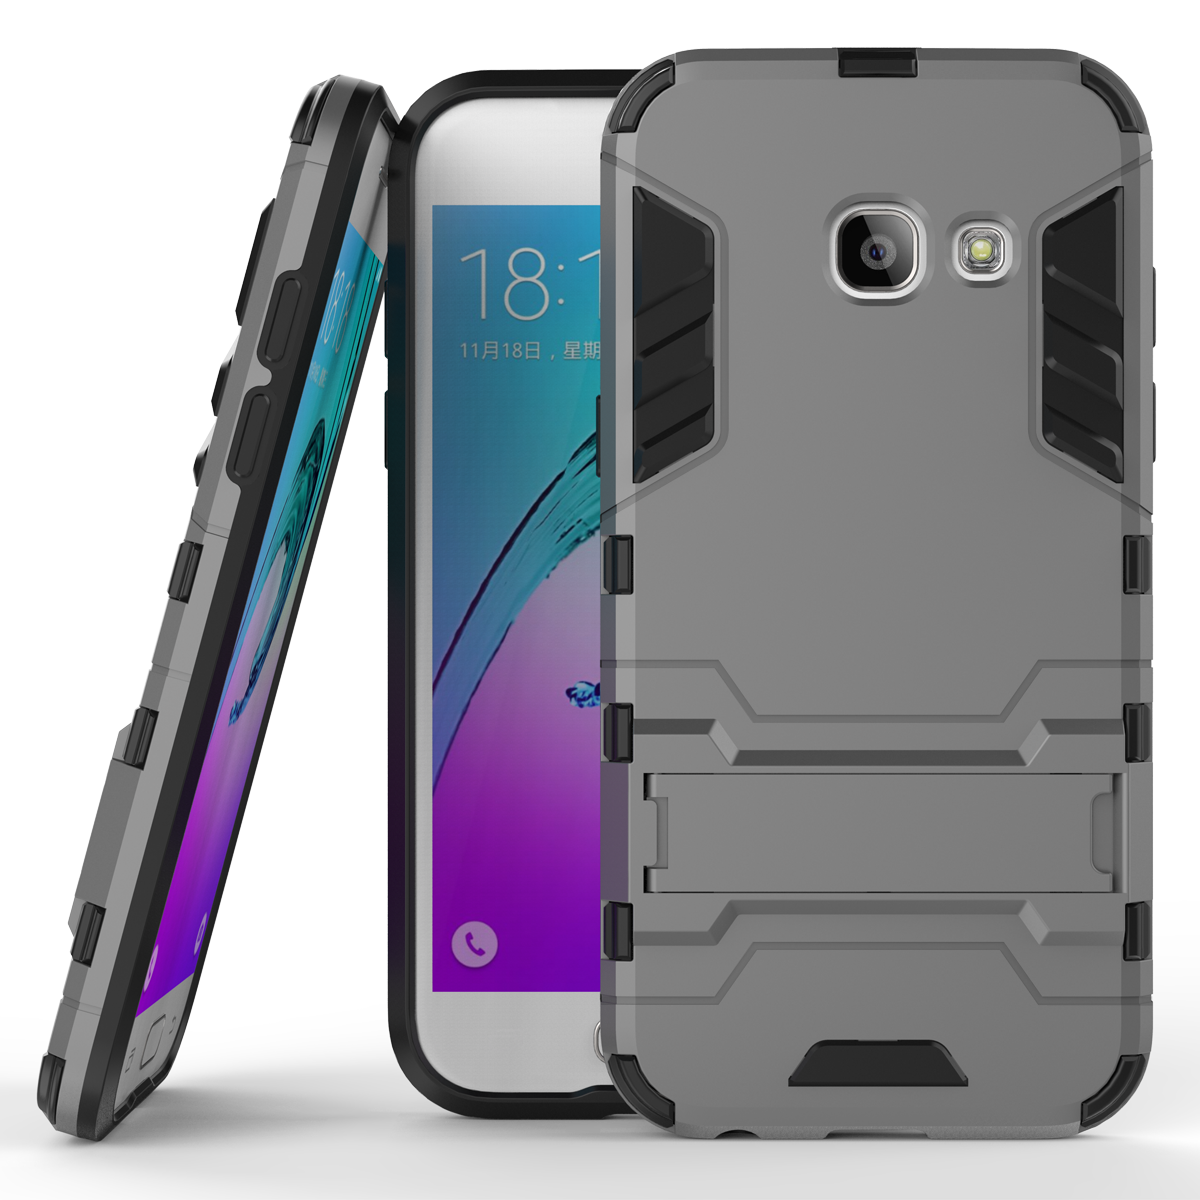 D armor kickstand protective phone cover case for samsung galaxy a3 2017 gray p20161229141042732